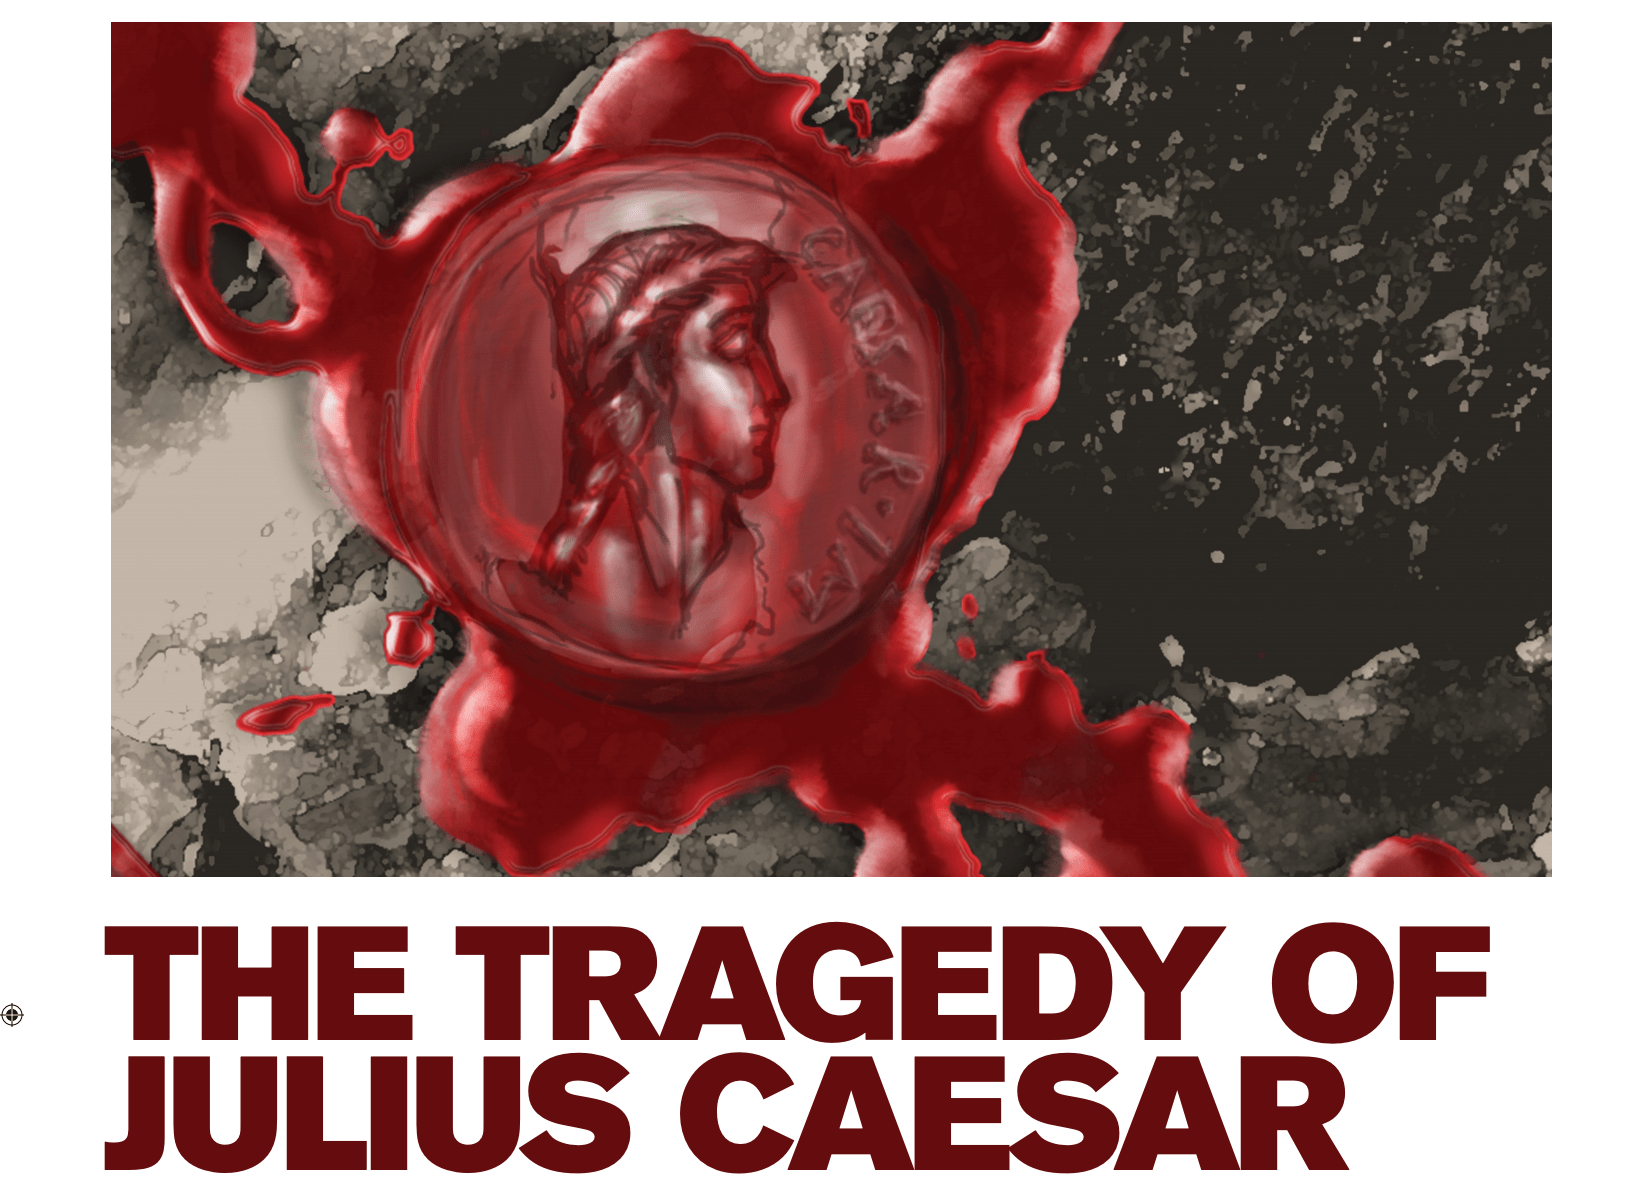 The Tragedy of Julius Caesar Poster 2016